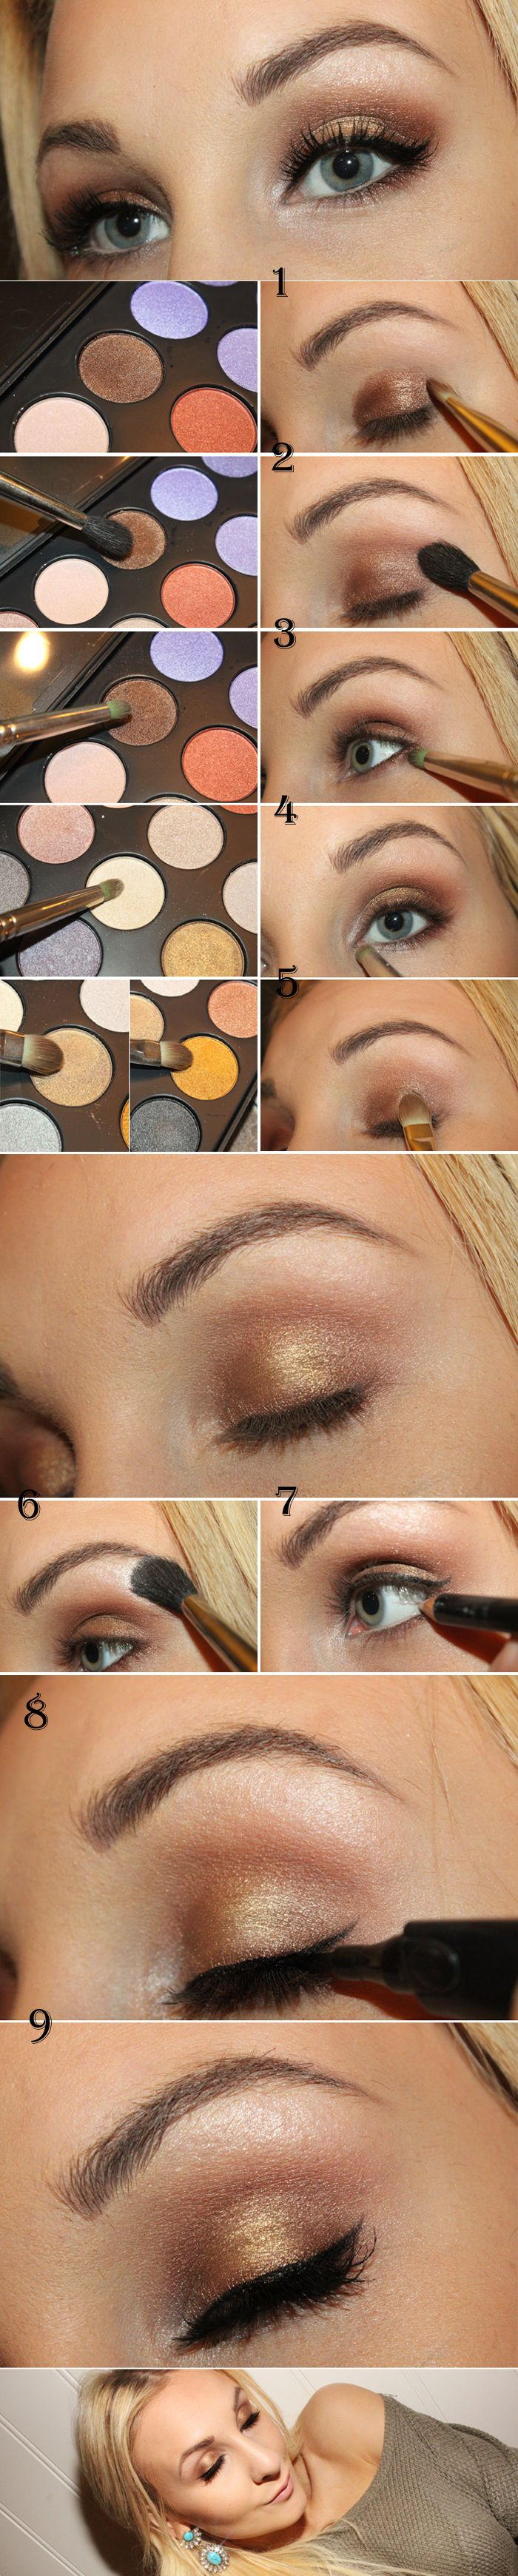 Perfect christmas makeup (hit link for text)